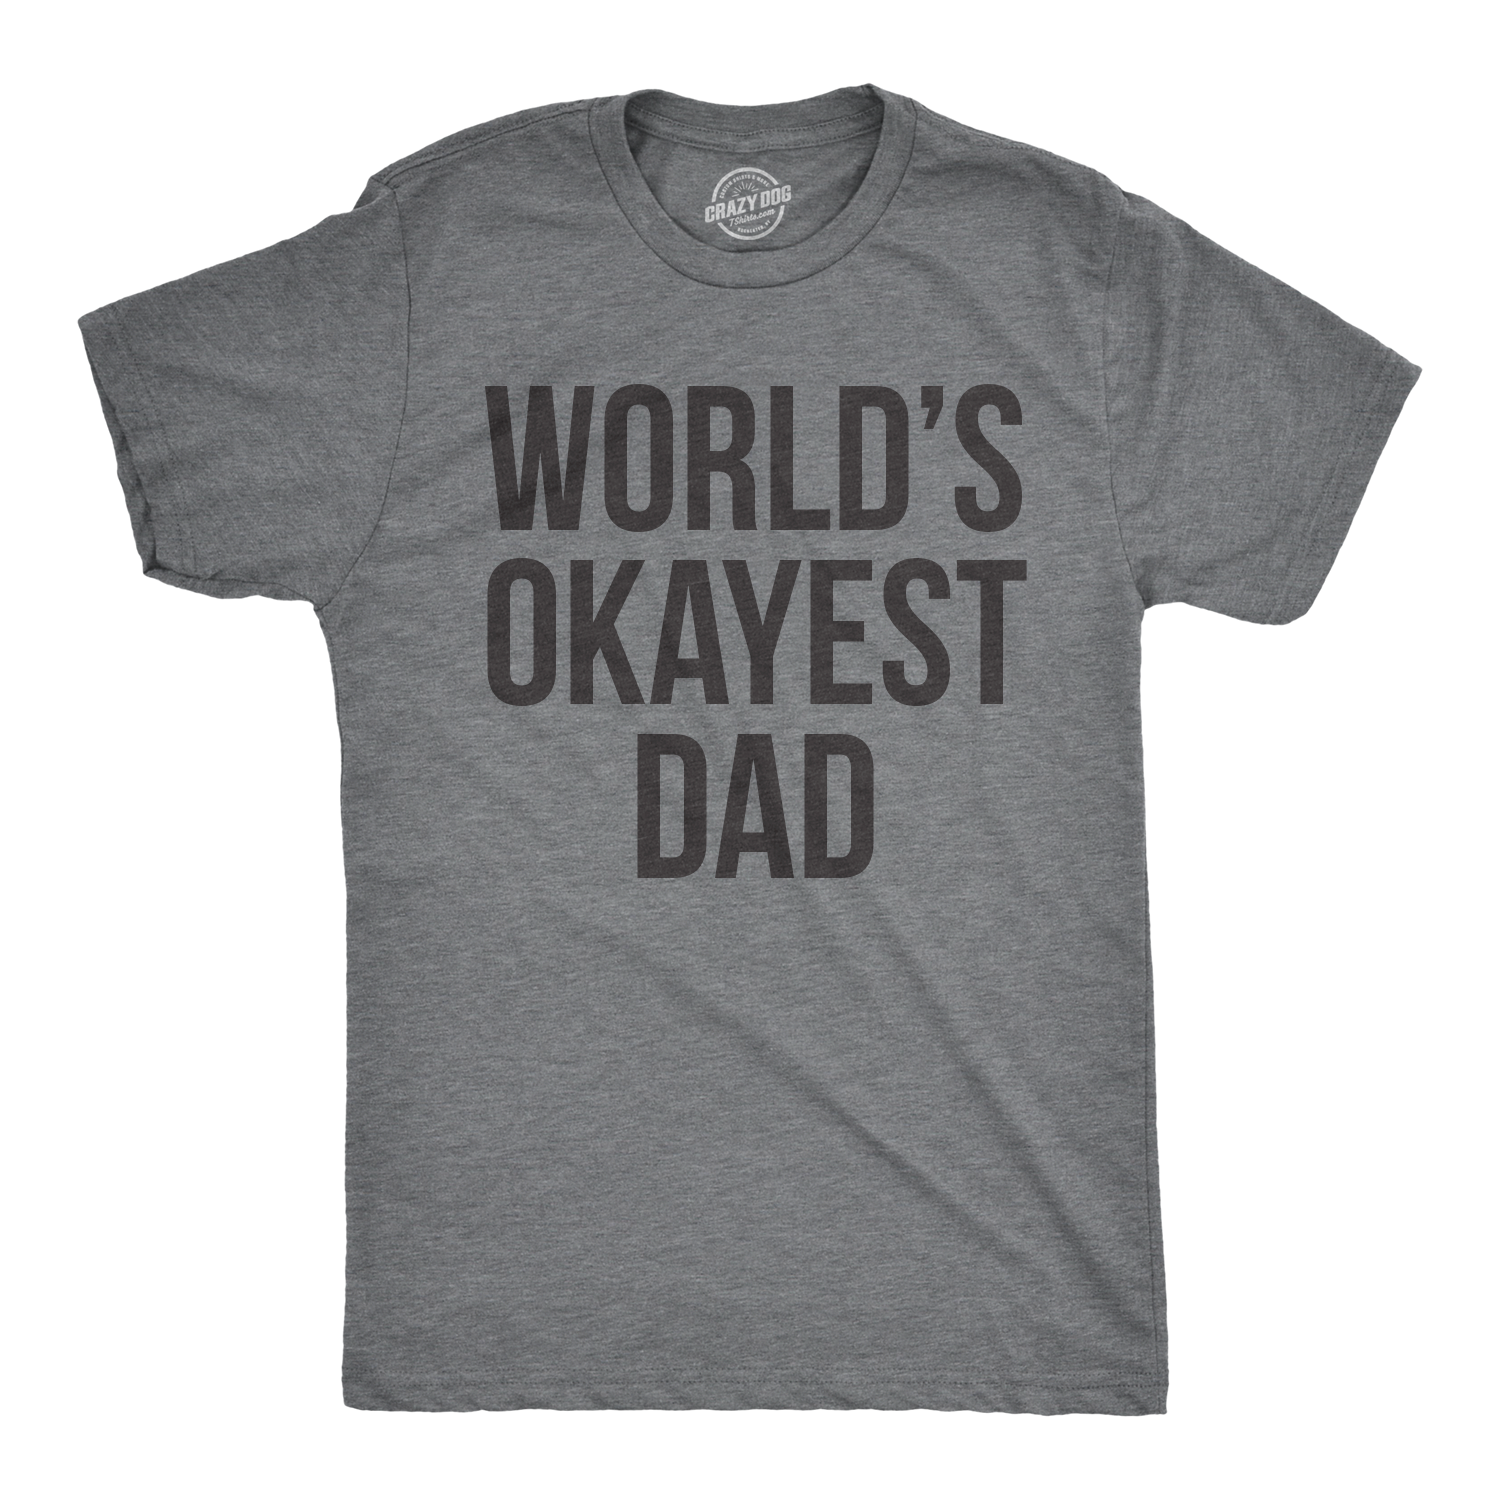 Funny Humor Tee Gift for Jeep Owner Dad Fathers Day T-Shirt